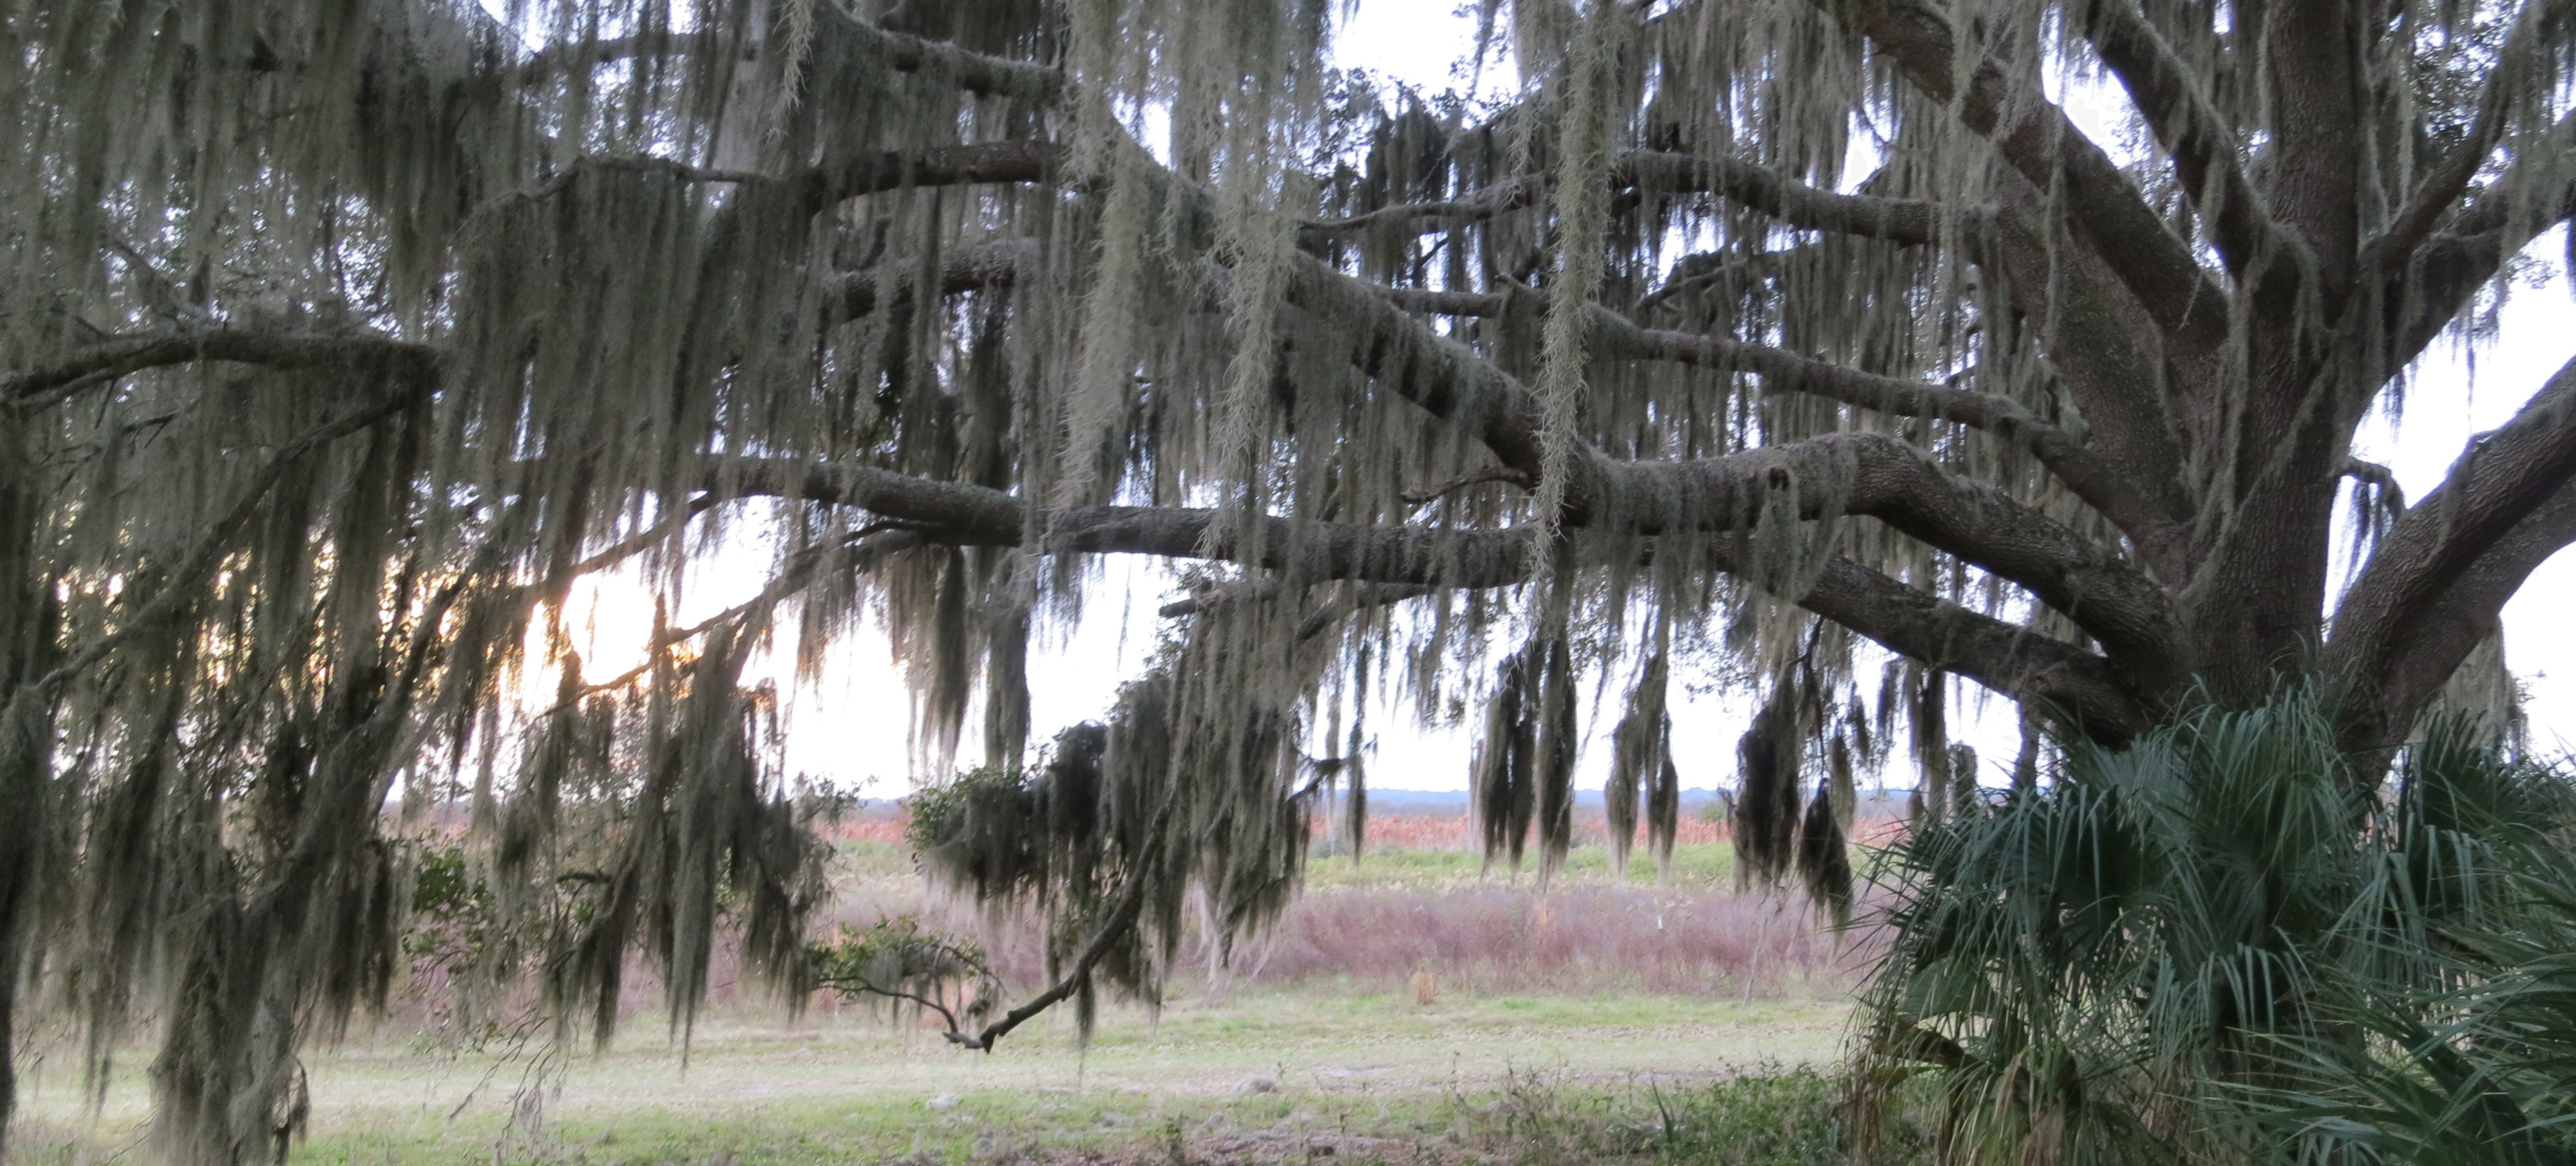 Alligators, Spanish moss, and a sense of wonder